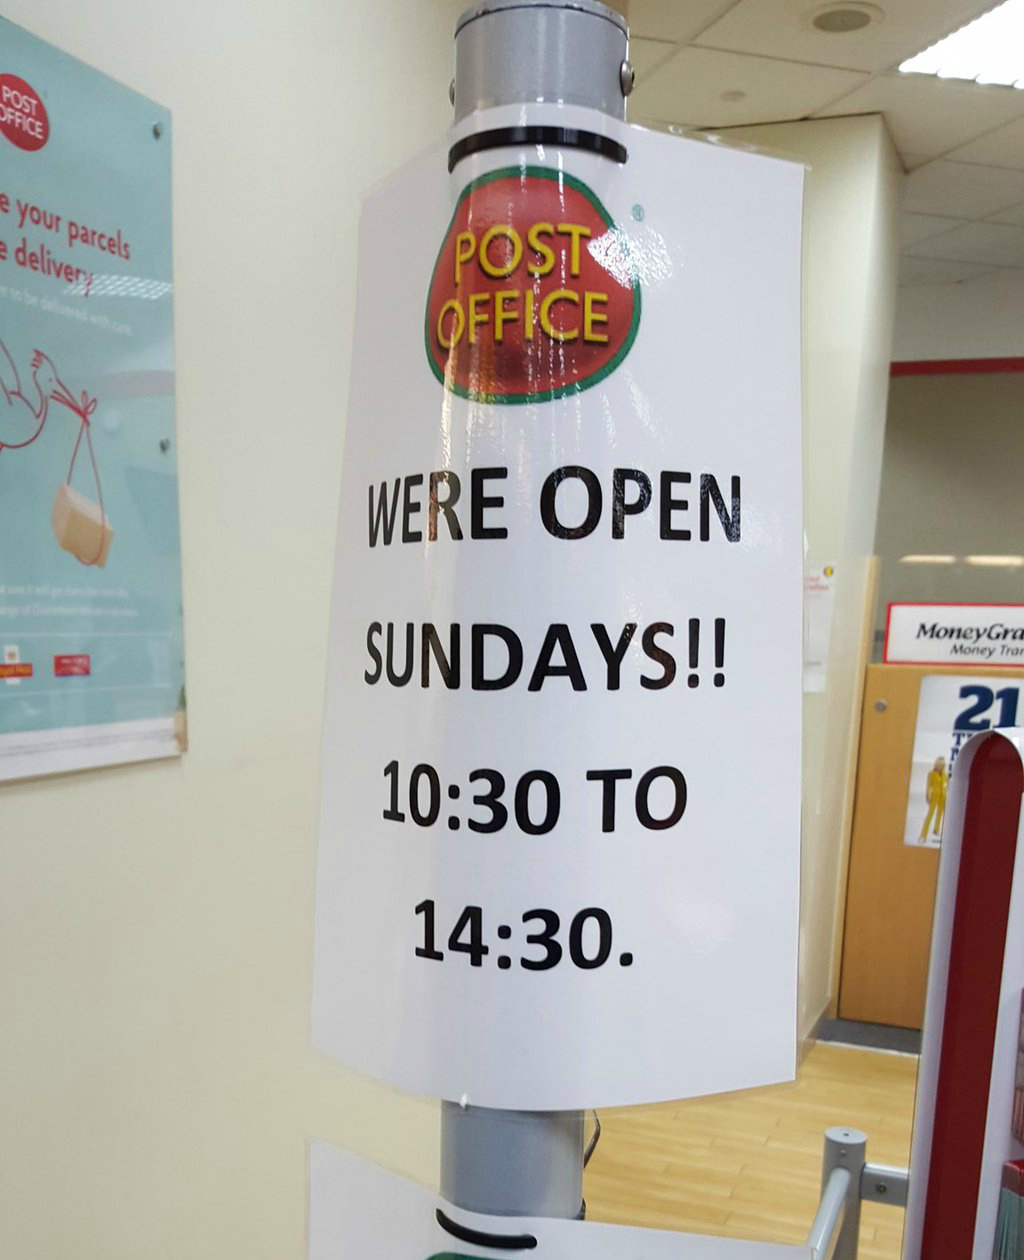 Chelmsford Post Office opening sign. Taken from a DannyUK.com article